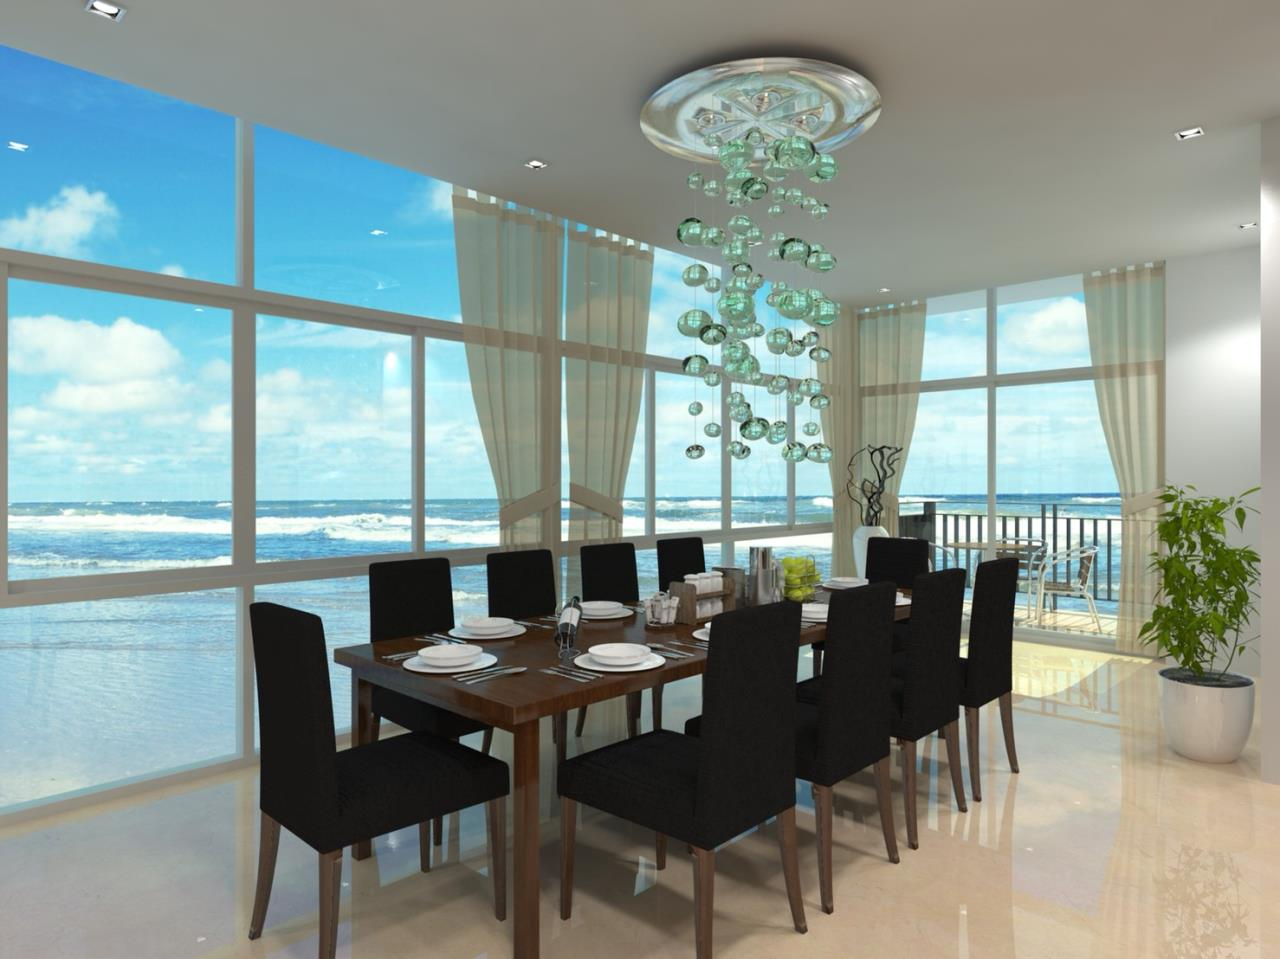 Signature Realty ( Thailand ) Co Ltd Agency's Furnished 2bedroom 40 sq.m condo floor 21-31 at The Grand Jomtein Beach Pattaya 25